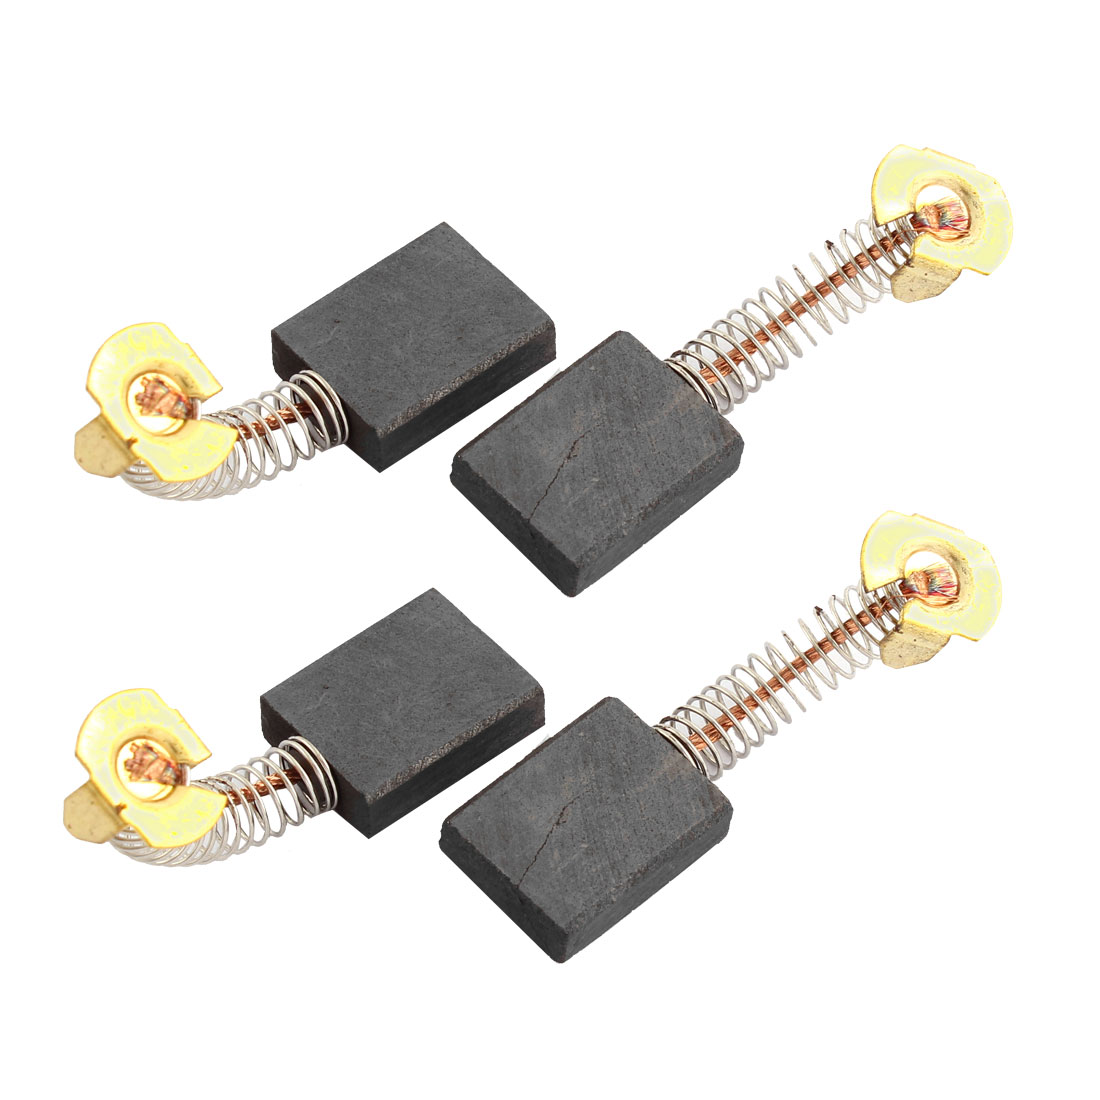 4pcs 21mm x 16mm x 6mm Electric Carbon Brush Replacement w Spring for Power Tool